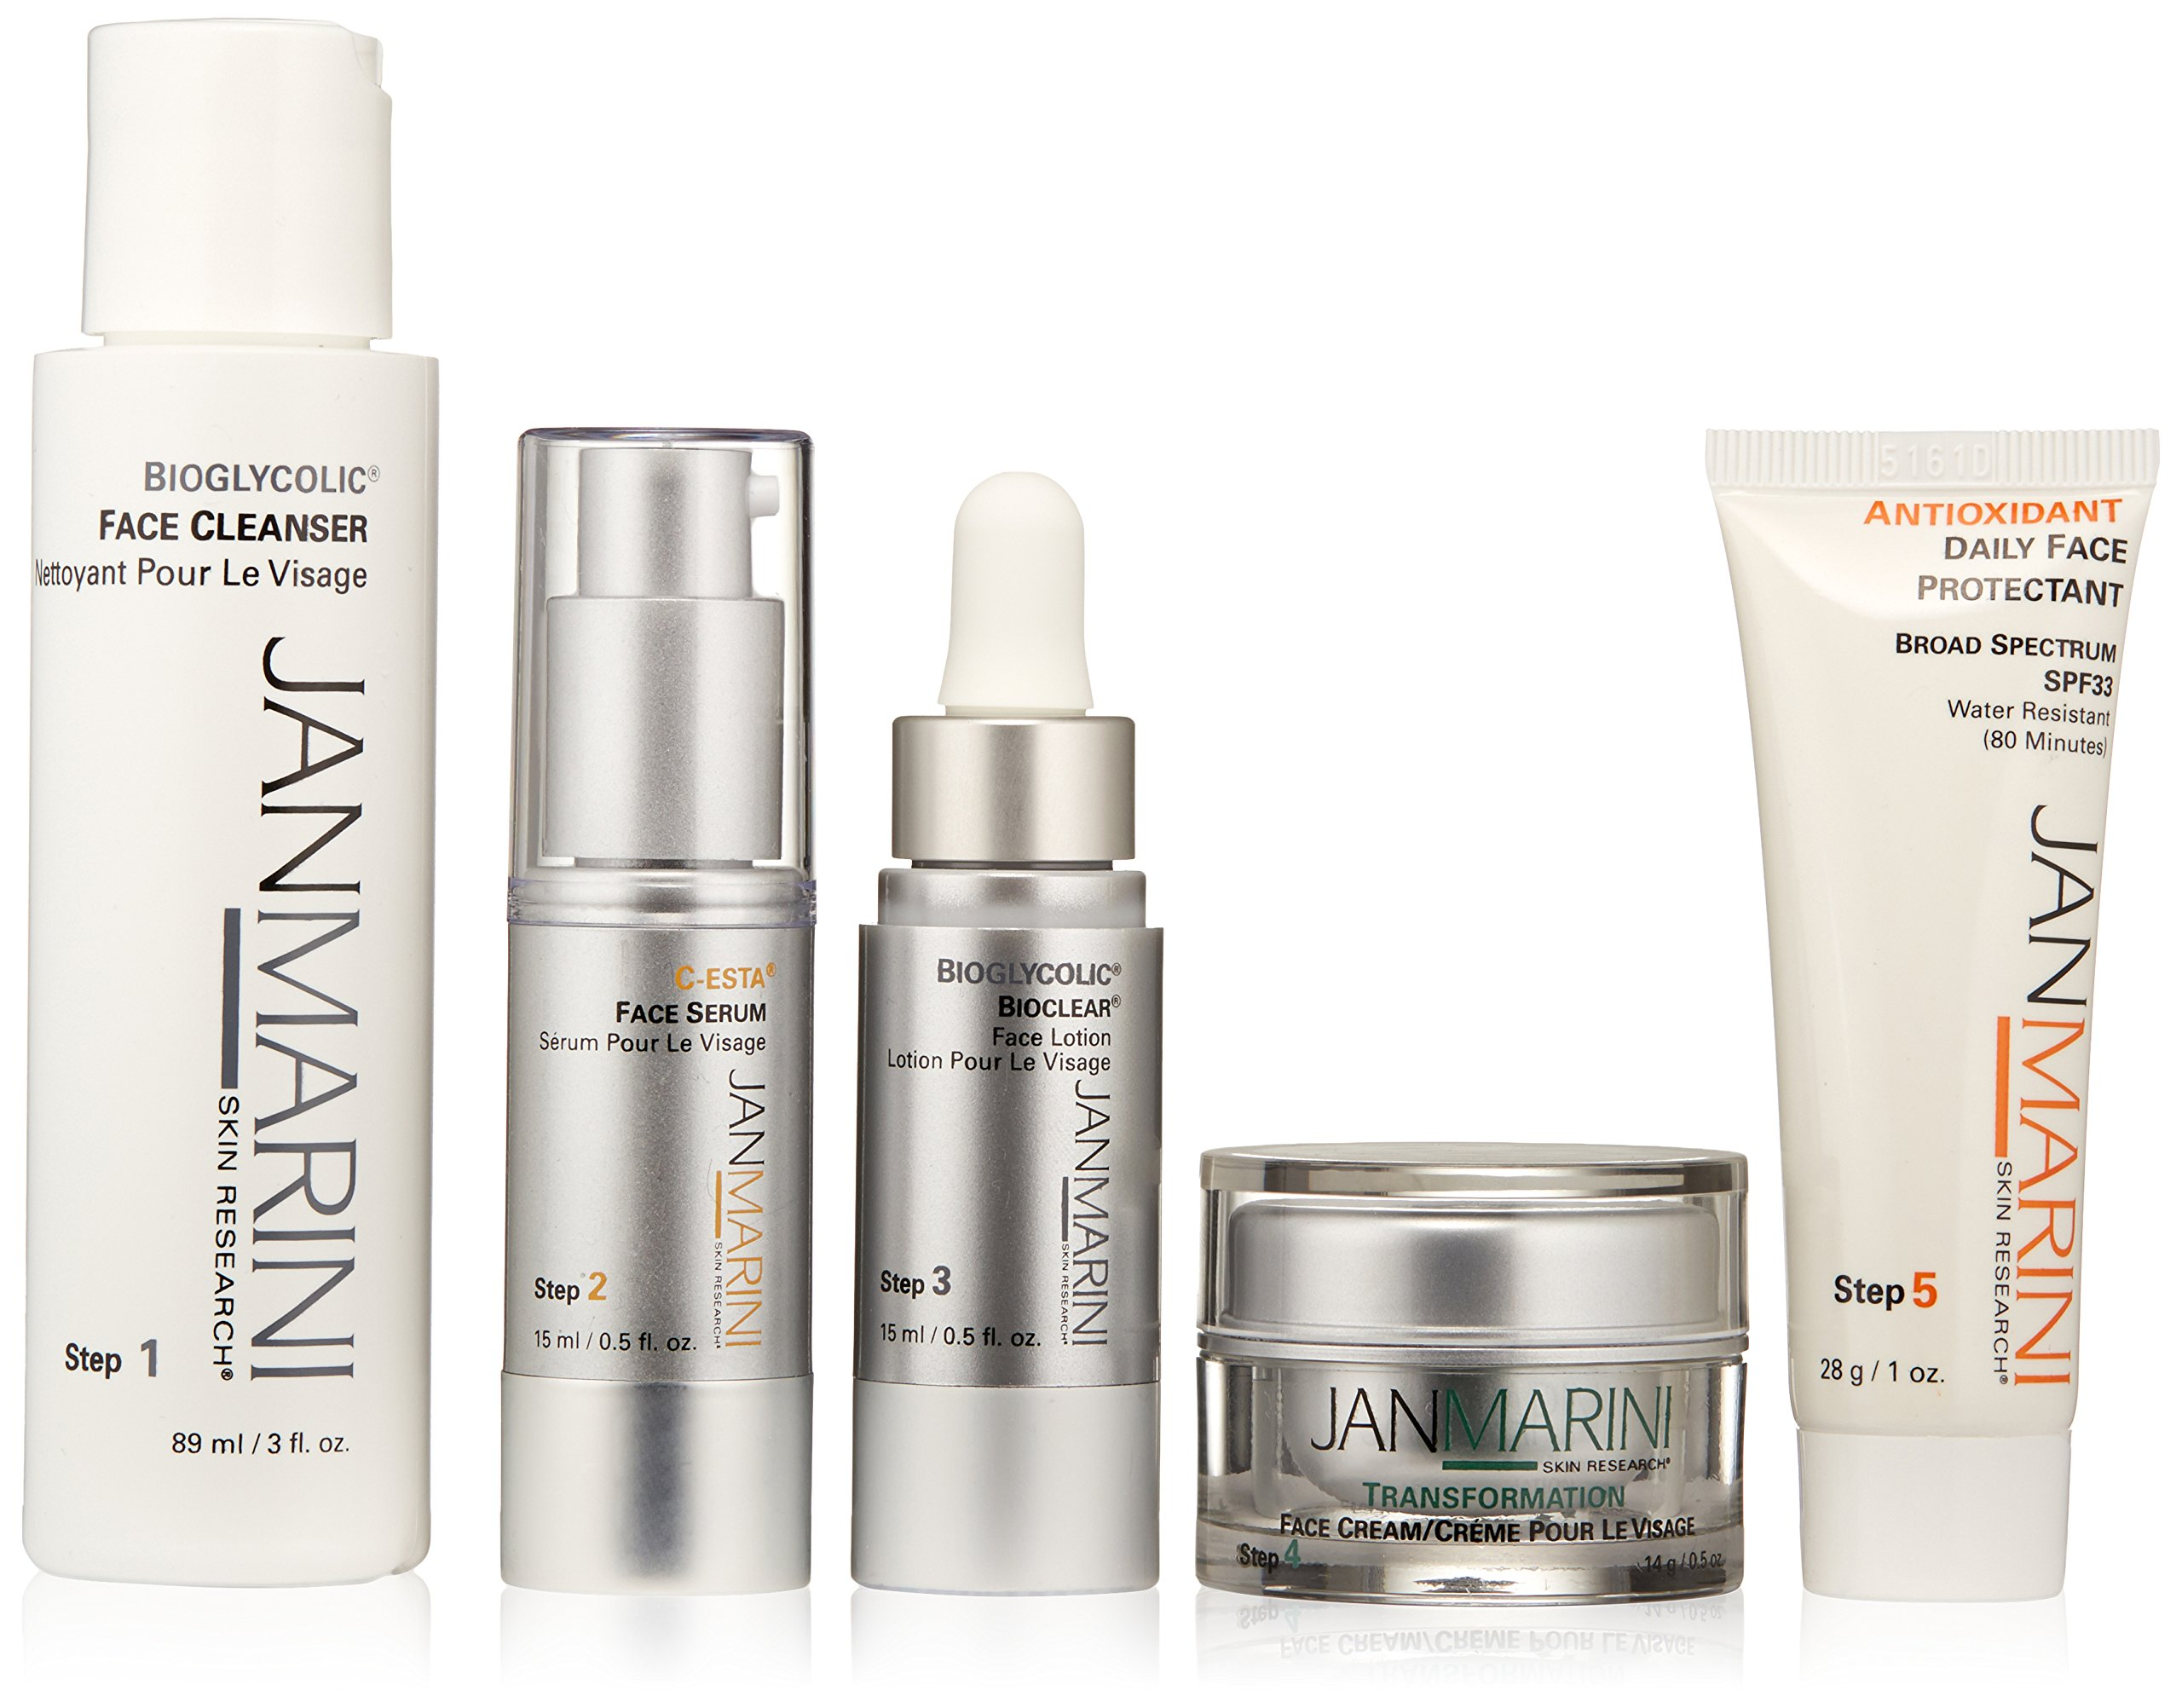 Jan Marini Skin Research Skin Care Management System, Normal/Combination Skin